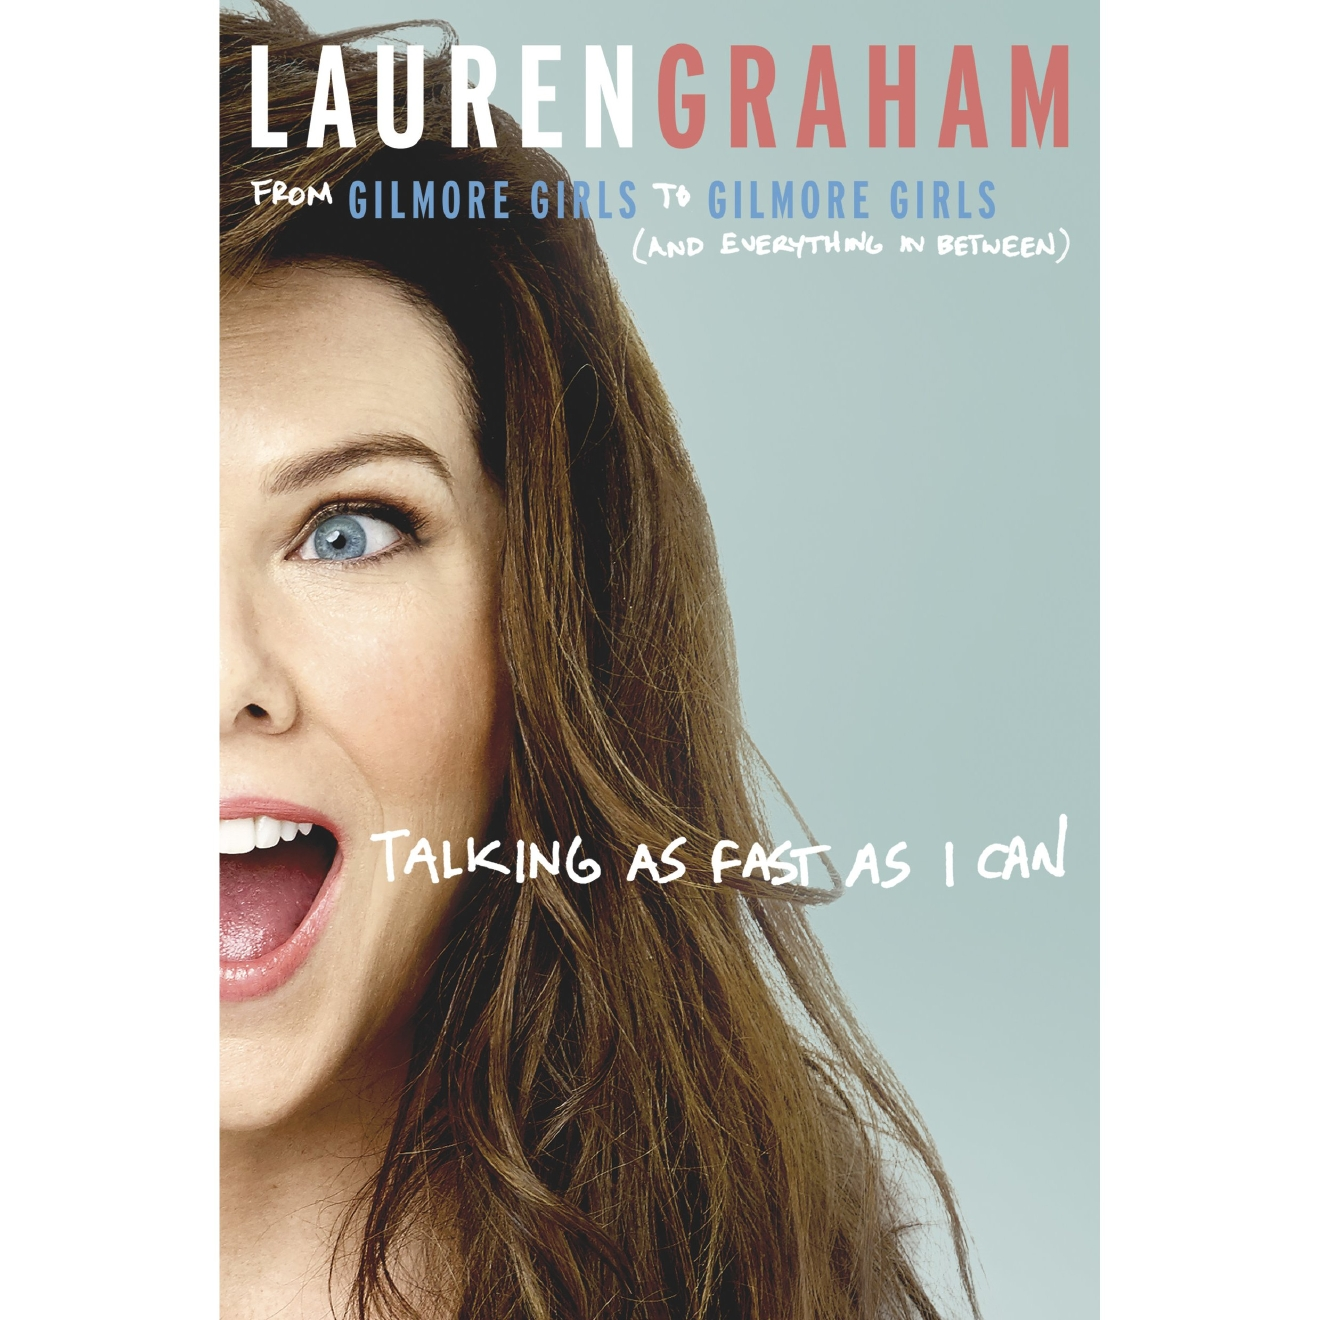 Lauren Graham's had quite a year with the long-awaited revival, Gilmore Girls: A Year in the Life, hitting Netflix last November. Can't get enough of the fast-talking Mom turned business woman's quips?  In her memoir, Graham shares stories of her childhood, dating, and of course her time in Hollywood on her hit shows Gilmore Girls and Parenthood. While you won't read any juicy details about fighting on set, Graham shares plenty of other insights such as how she went vegan to impress Ellen Degeneres, and her experience stepping back into the role of Lorelei Gilmore almost a decade later. (Photo: Ballantine Books)